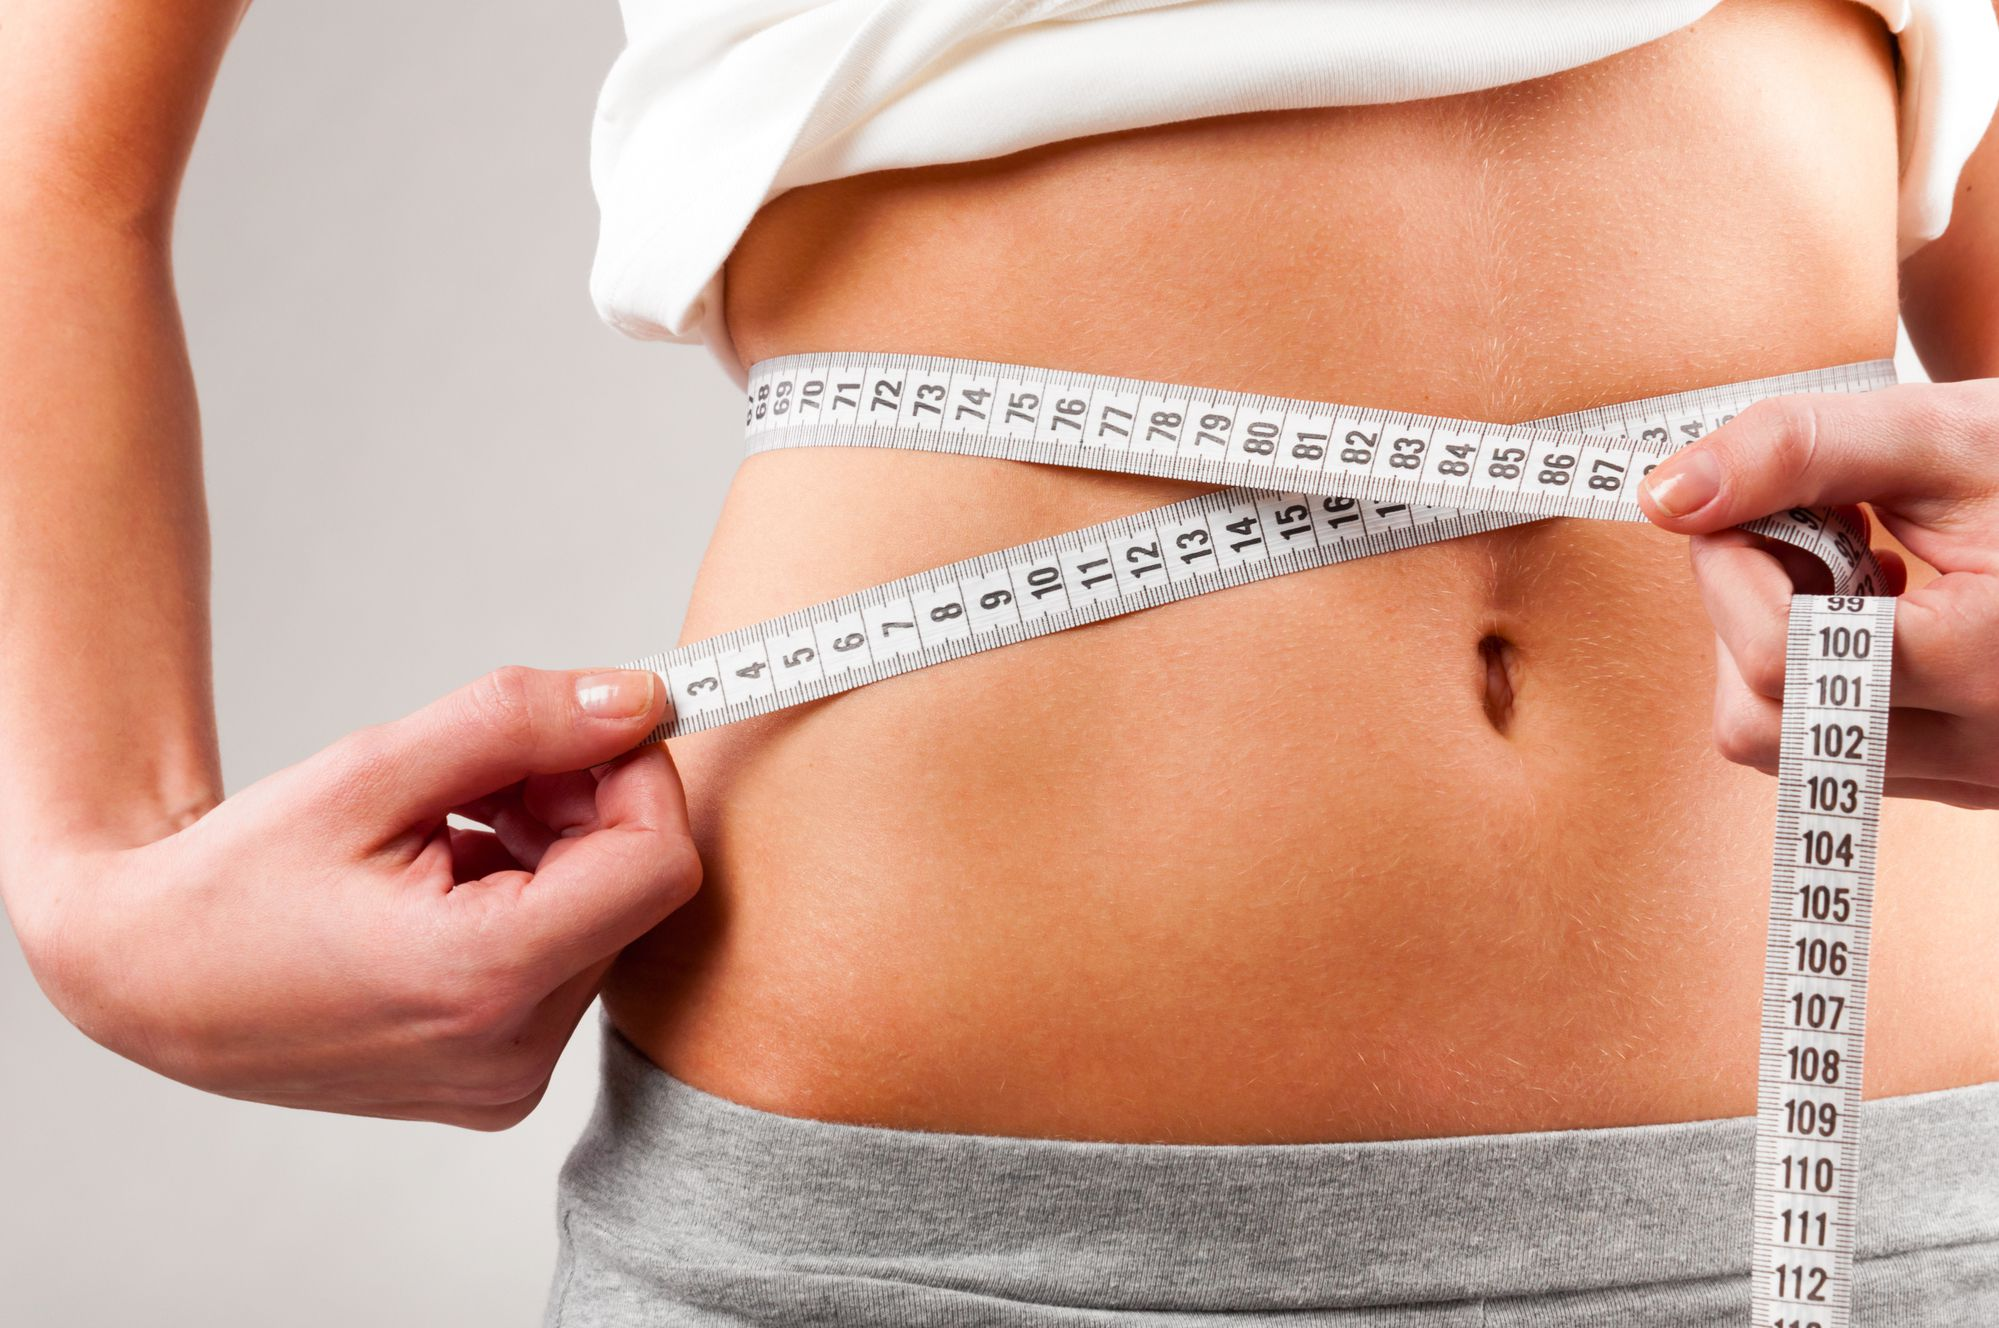 There are better ways to measure body fat than BMI | Popular